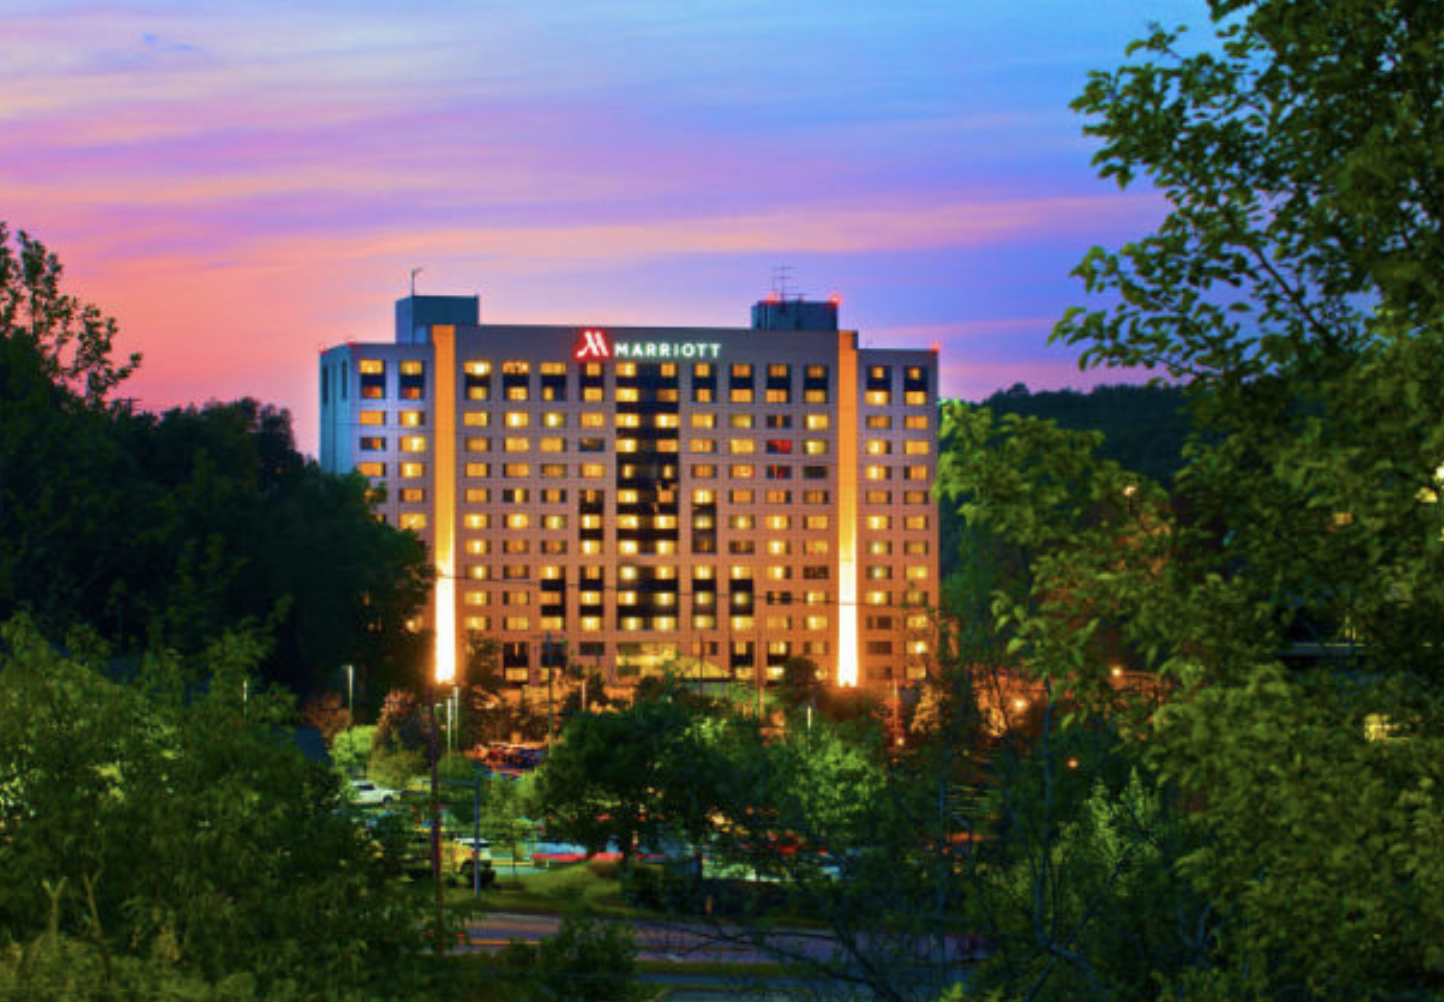 Pittsburgh Airport Marriott - 777 Aten Road, Moon Township, PA 15108412-490-6643 • Book by September 5Reference: CCBC Presidential Inauguration$109 per nightBOOK A ROOM HERE